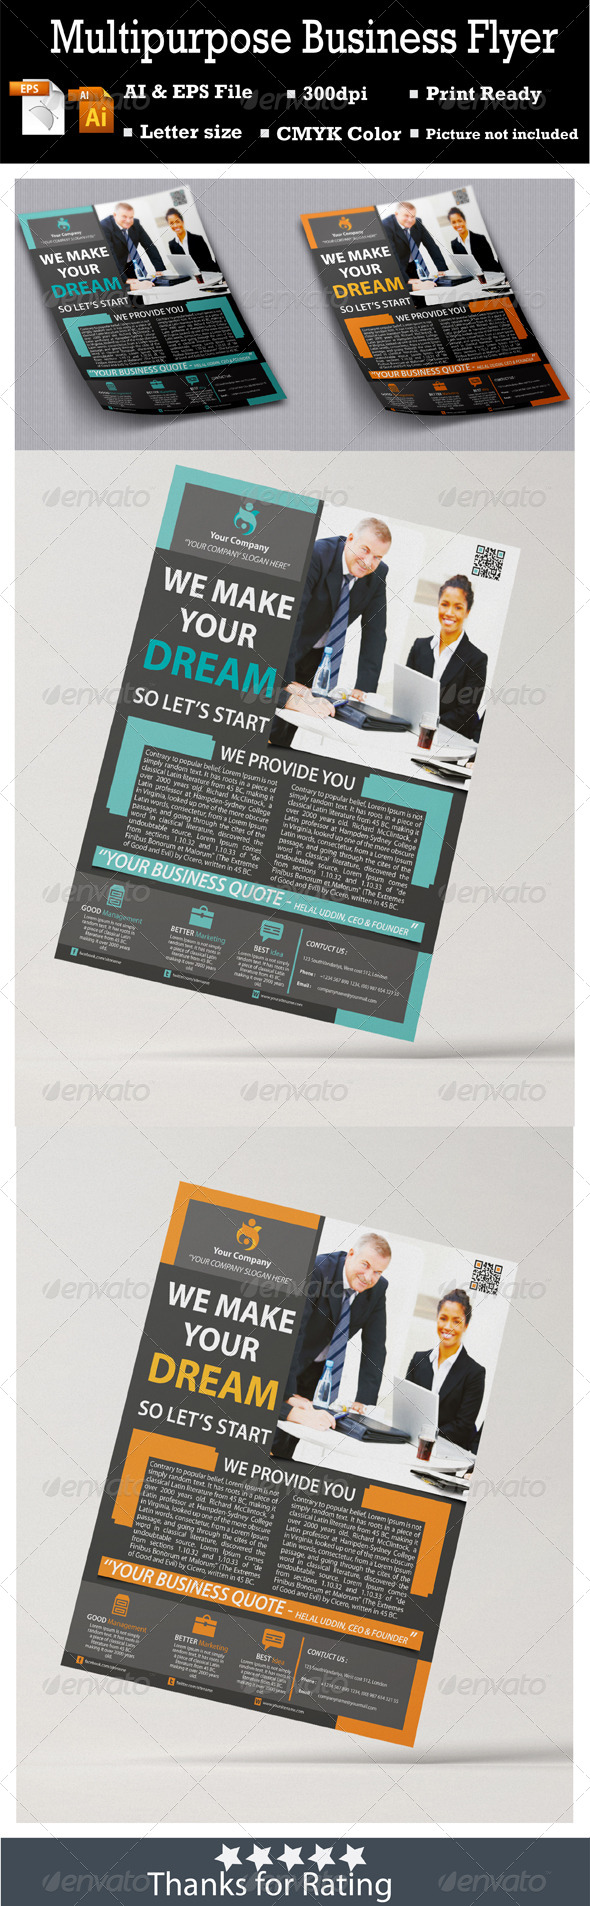 GraphicRiver Multipurpose Business Flyer 7176773